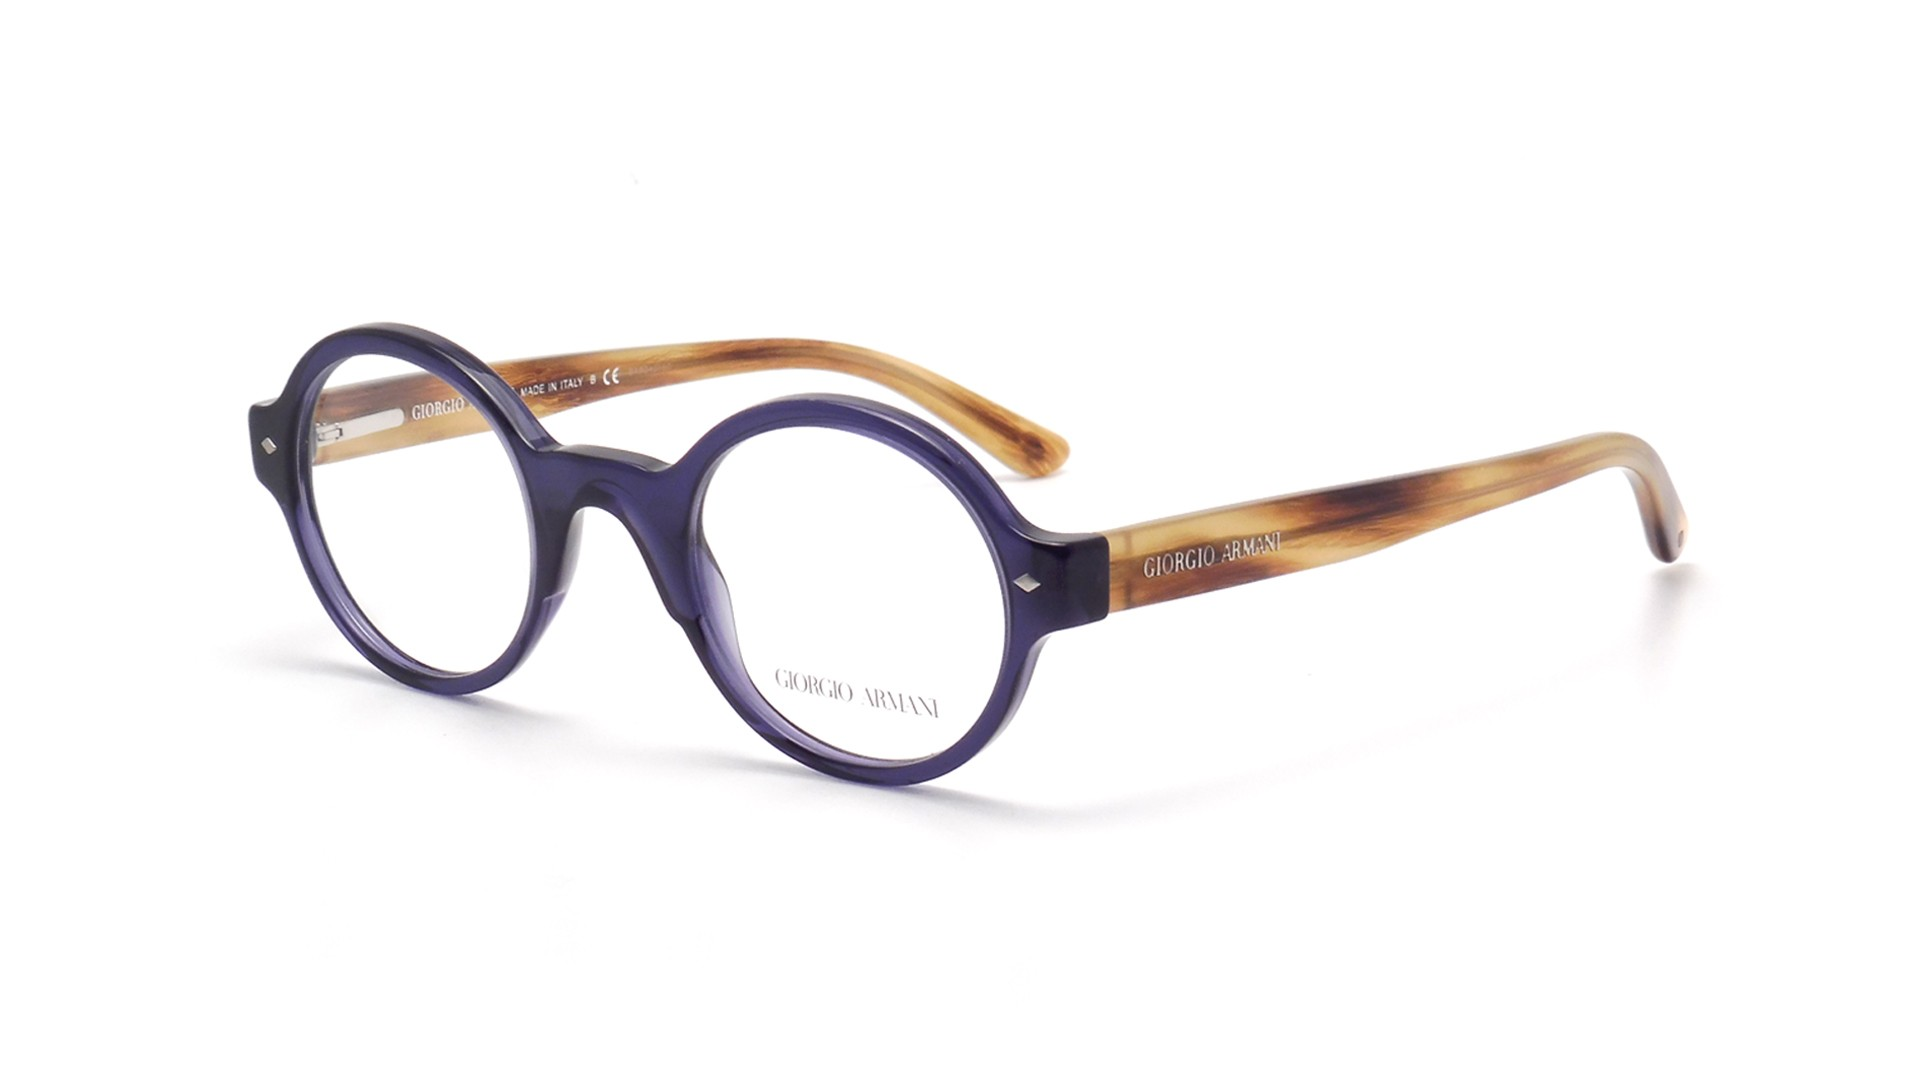 Giorgio Armani Frames For Glasses : Giorgio Armani Frames of Life Blue AR7068 5358 46-24 ...